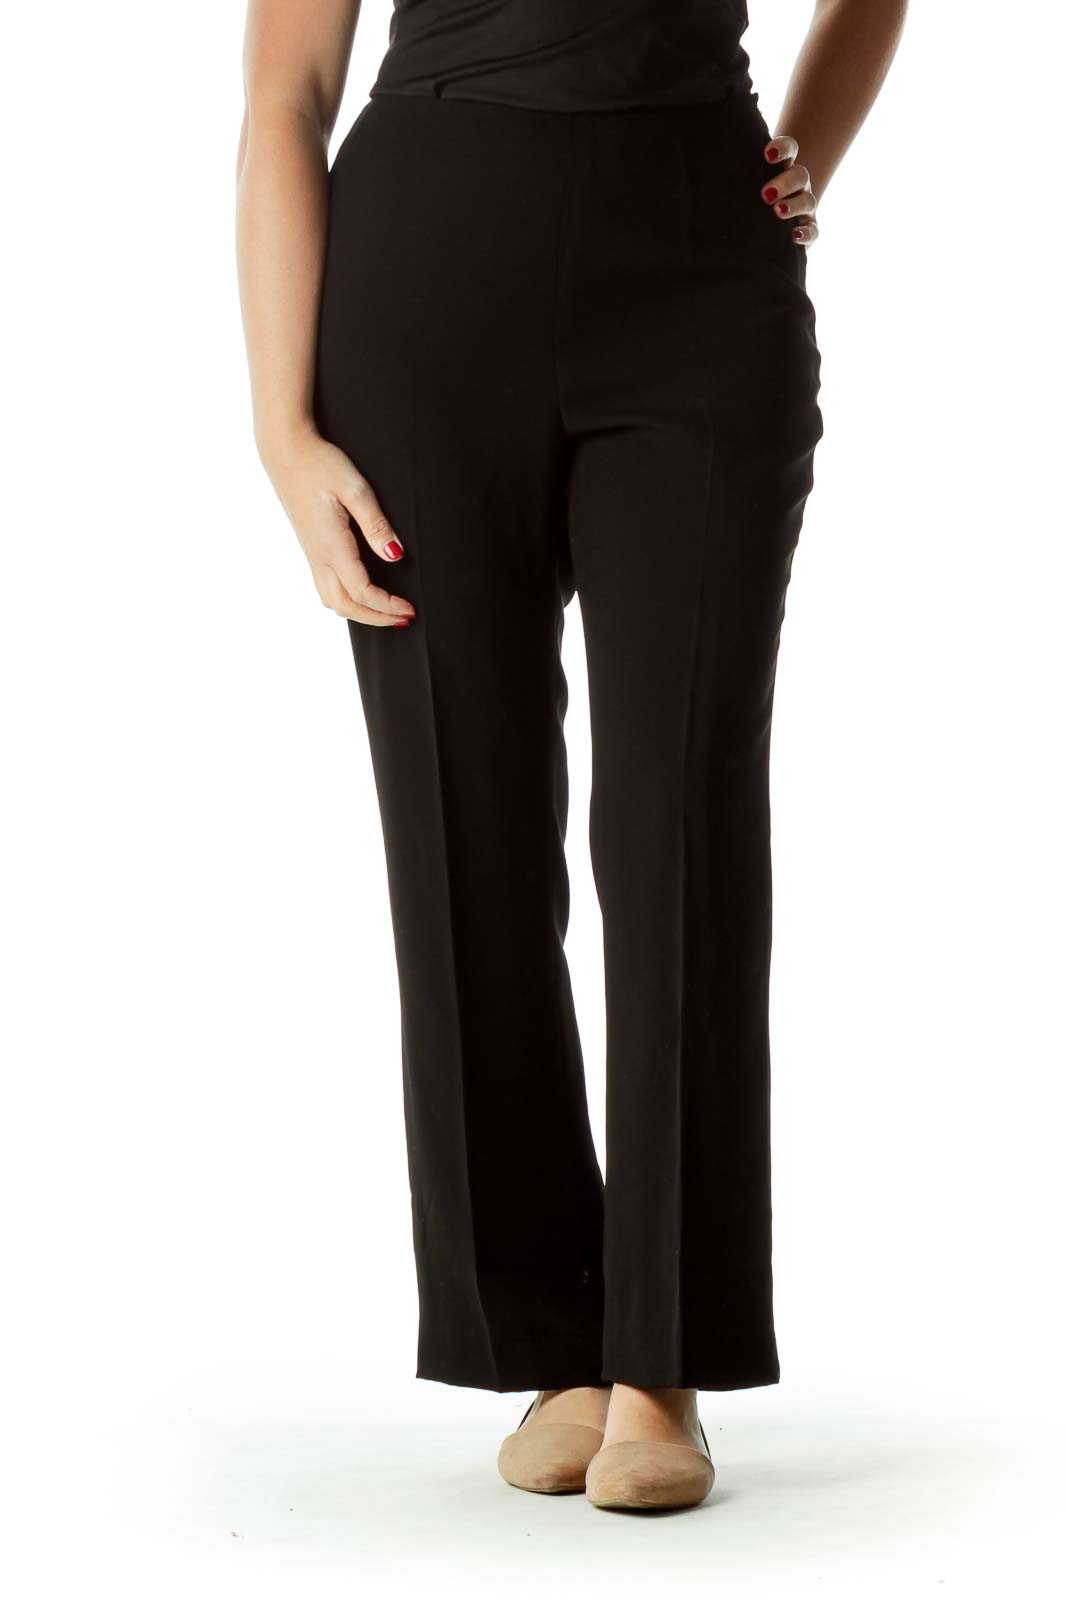 Black High-Waisted Pants